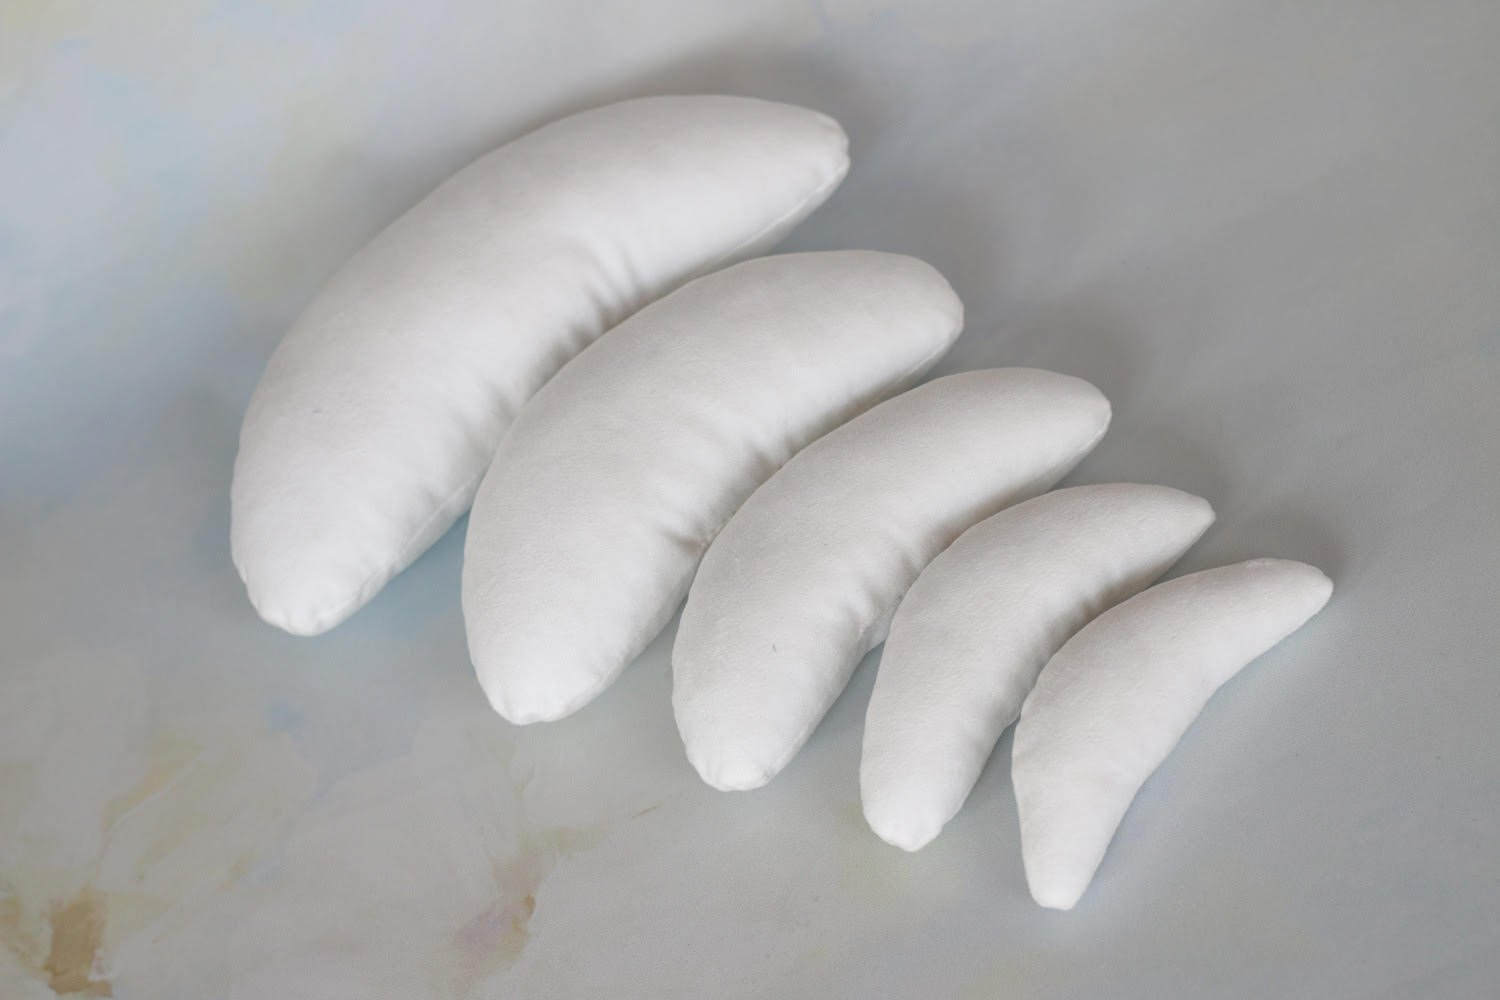 Newborn Photography Posing Pillows - 5 Piece White Pillow Set - Pre-Filled, Cotton - Crescent Baby Photo Prop - By Five Star Photo by Five Star Photo